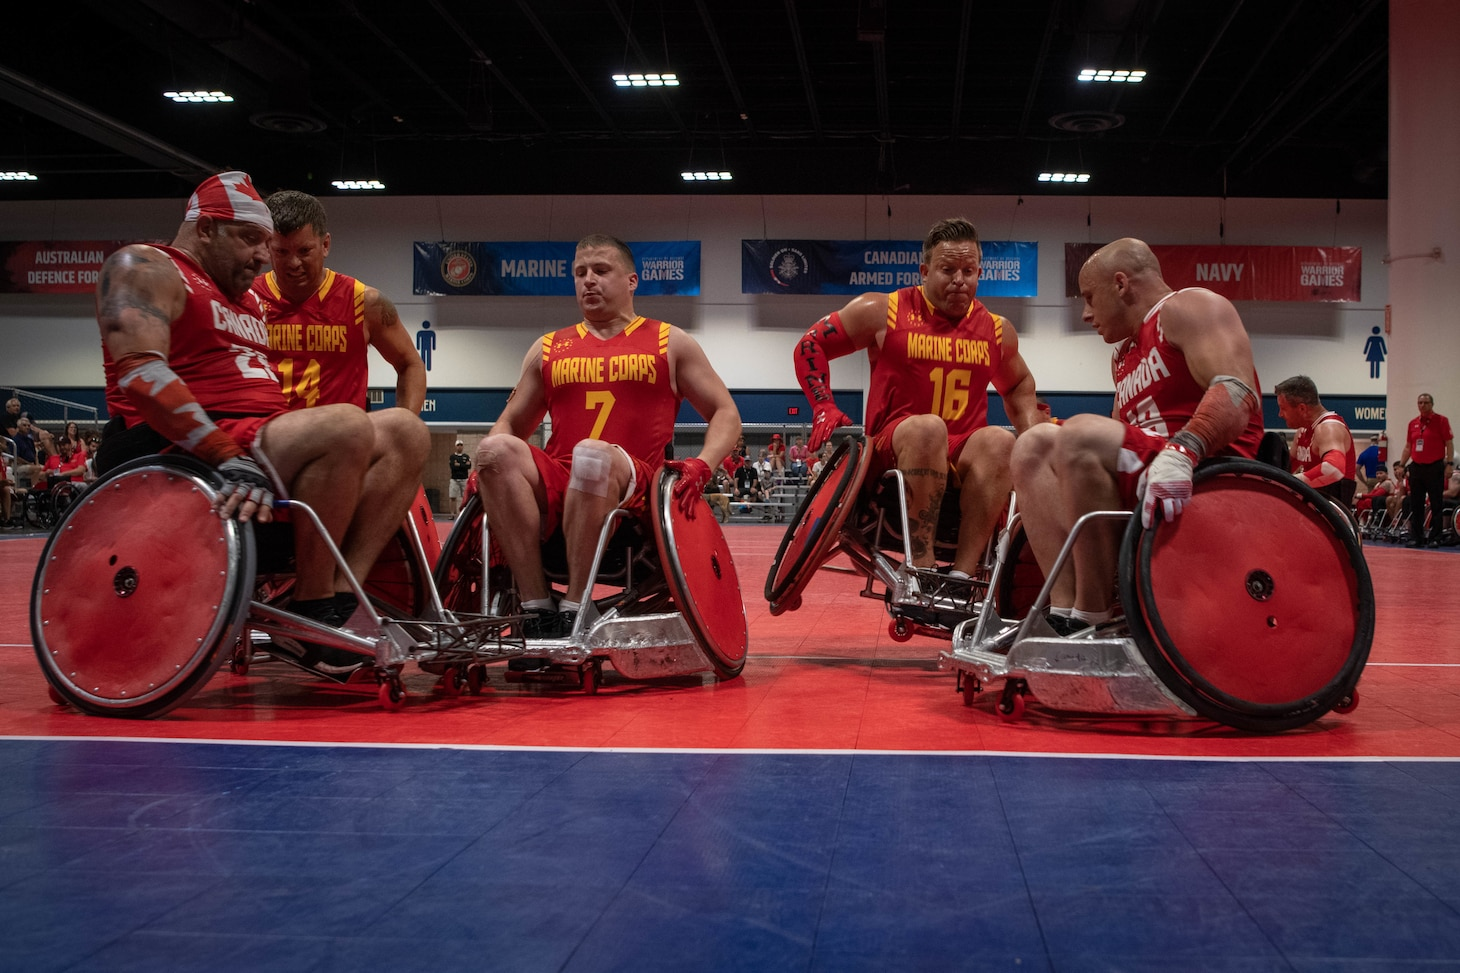 Group photo of athletes of Team Marine Corps and Canada colliding at the end zone during the 2019 DoD Warrior Games wheelchair rugby preliminaries in Tampa, Florida.